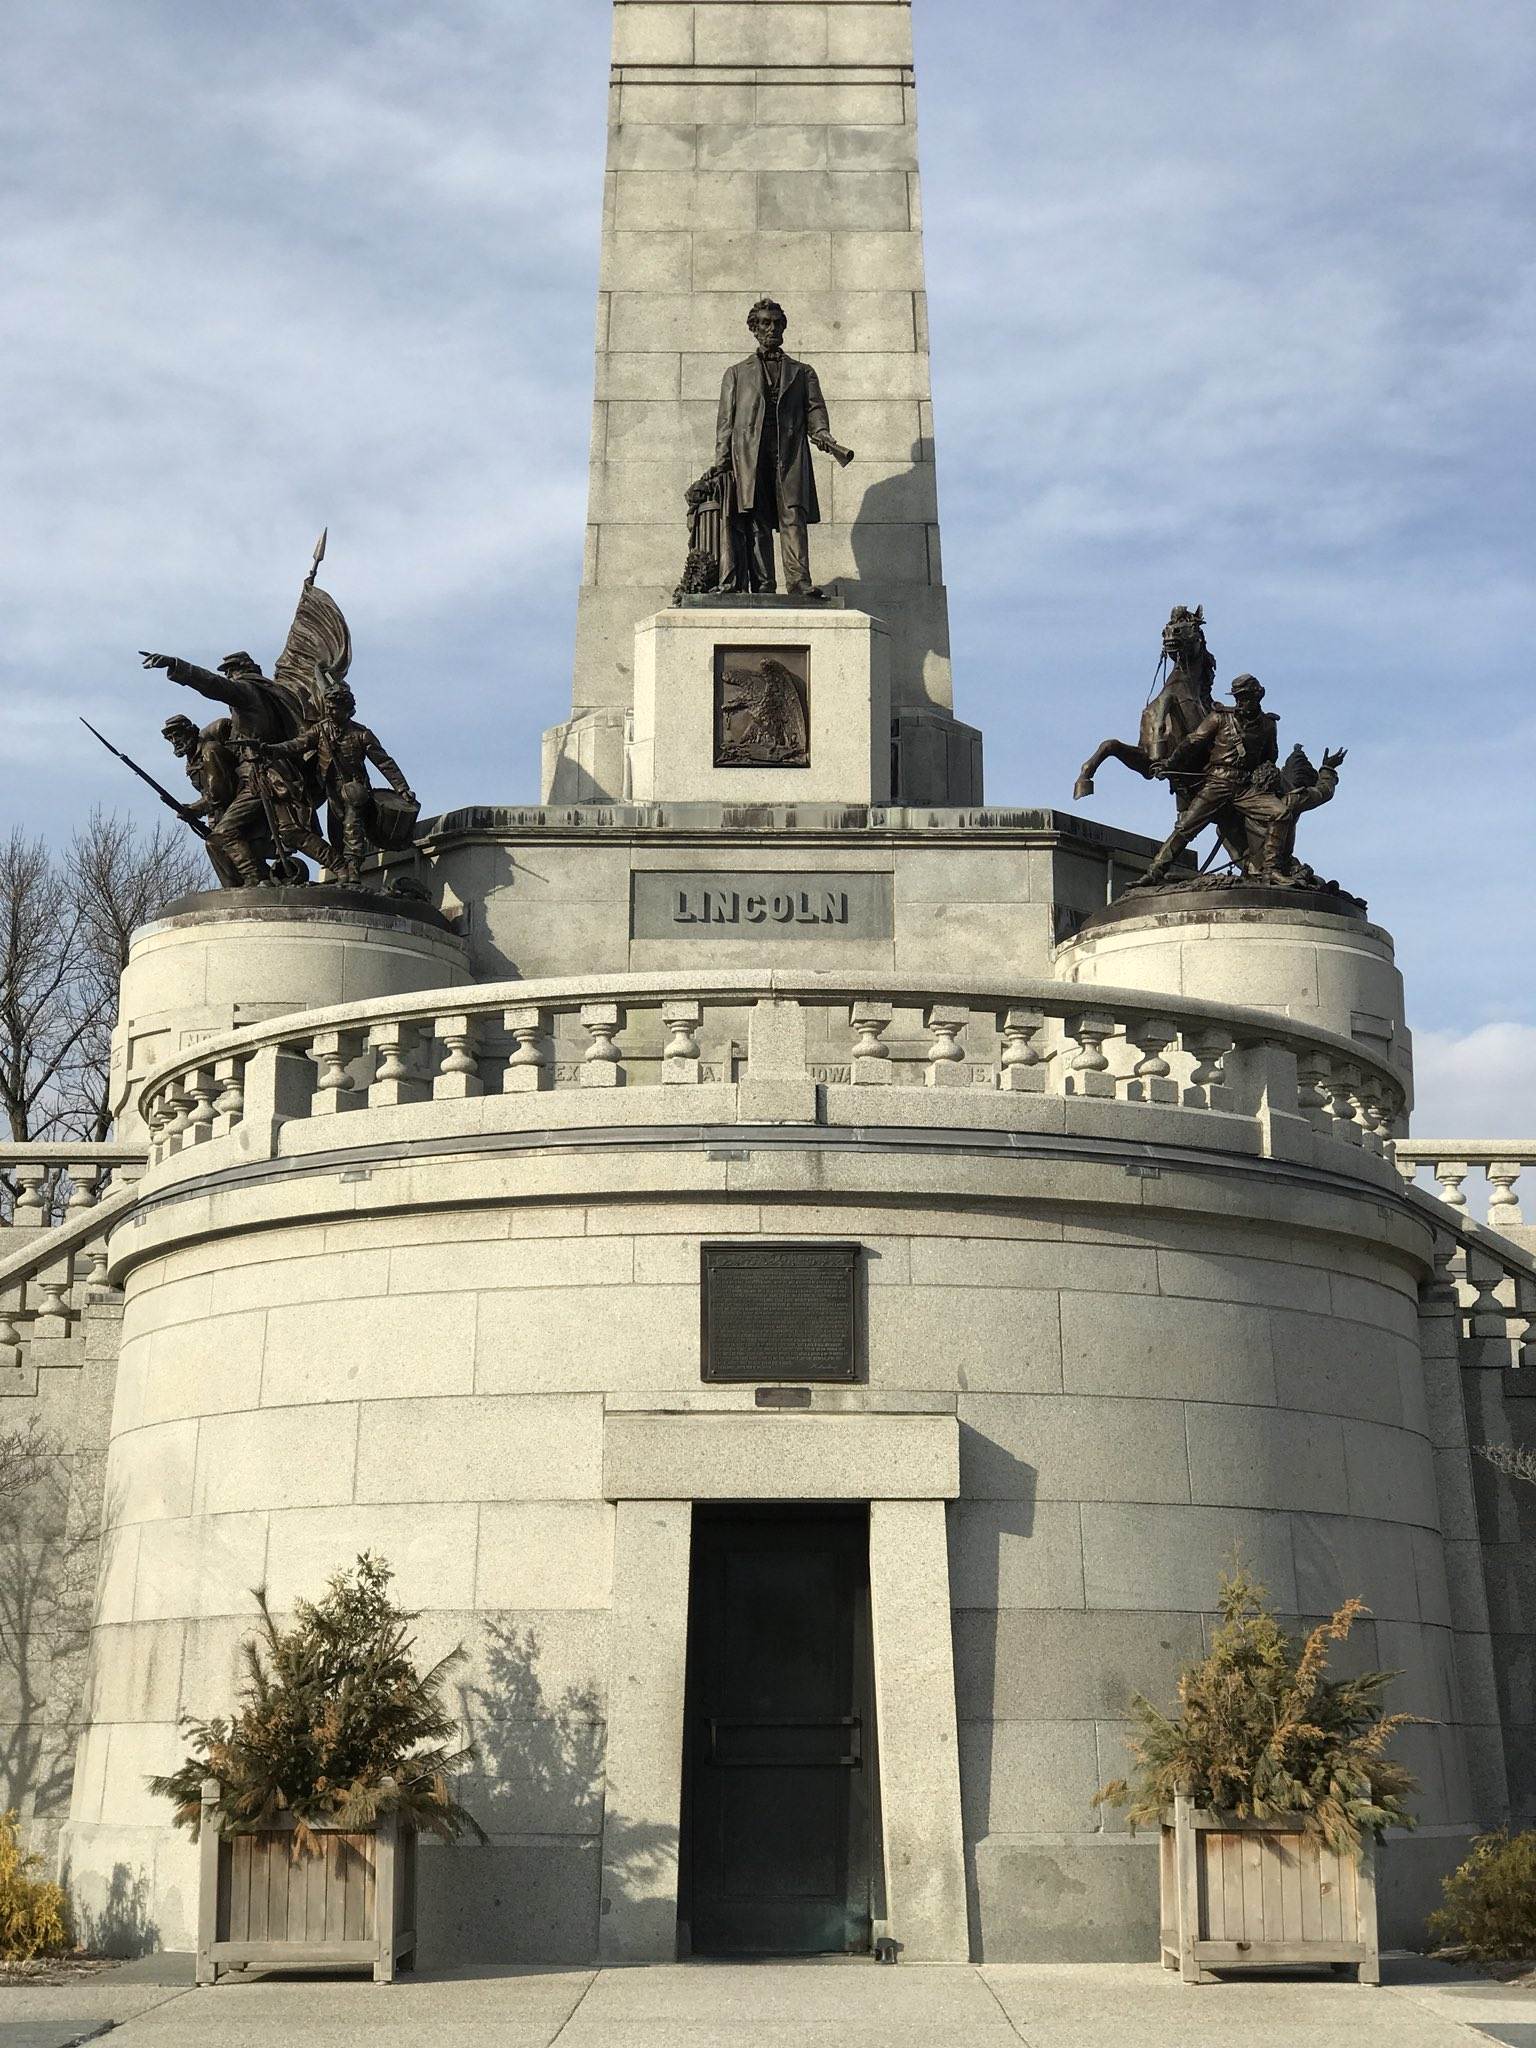 View of the Lincoln Tomb in Springfield, Illinois. https://t.co/EhM1mkOh3c